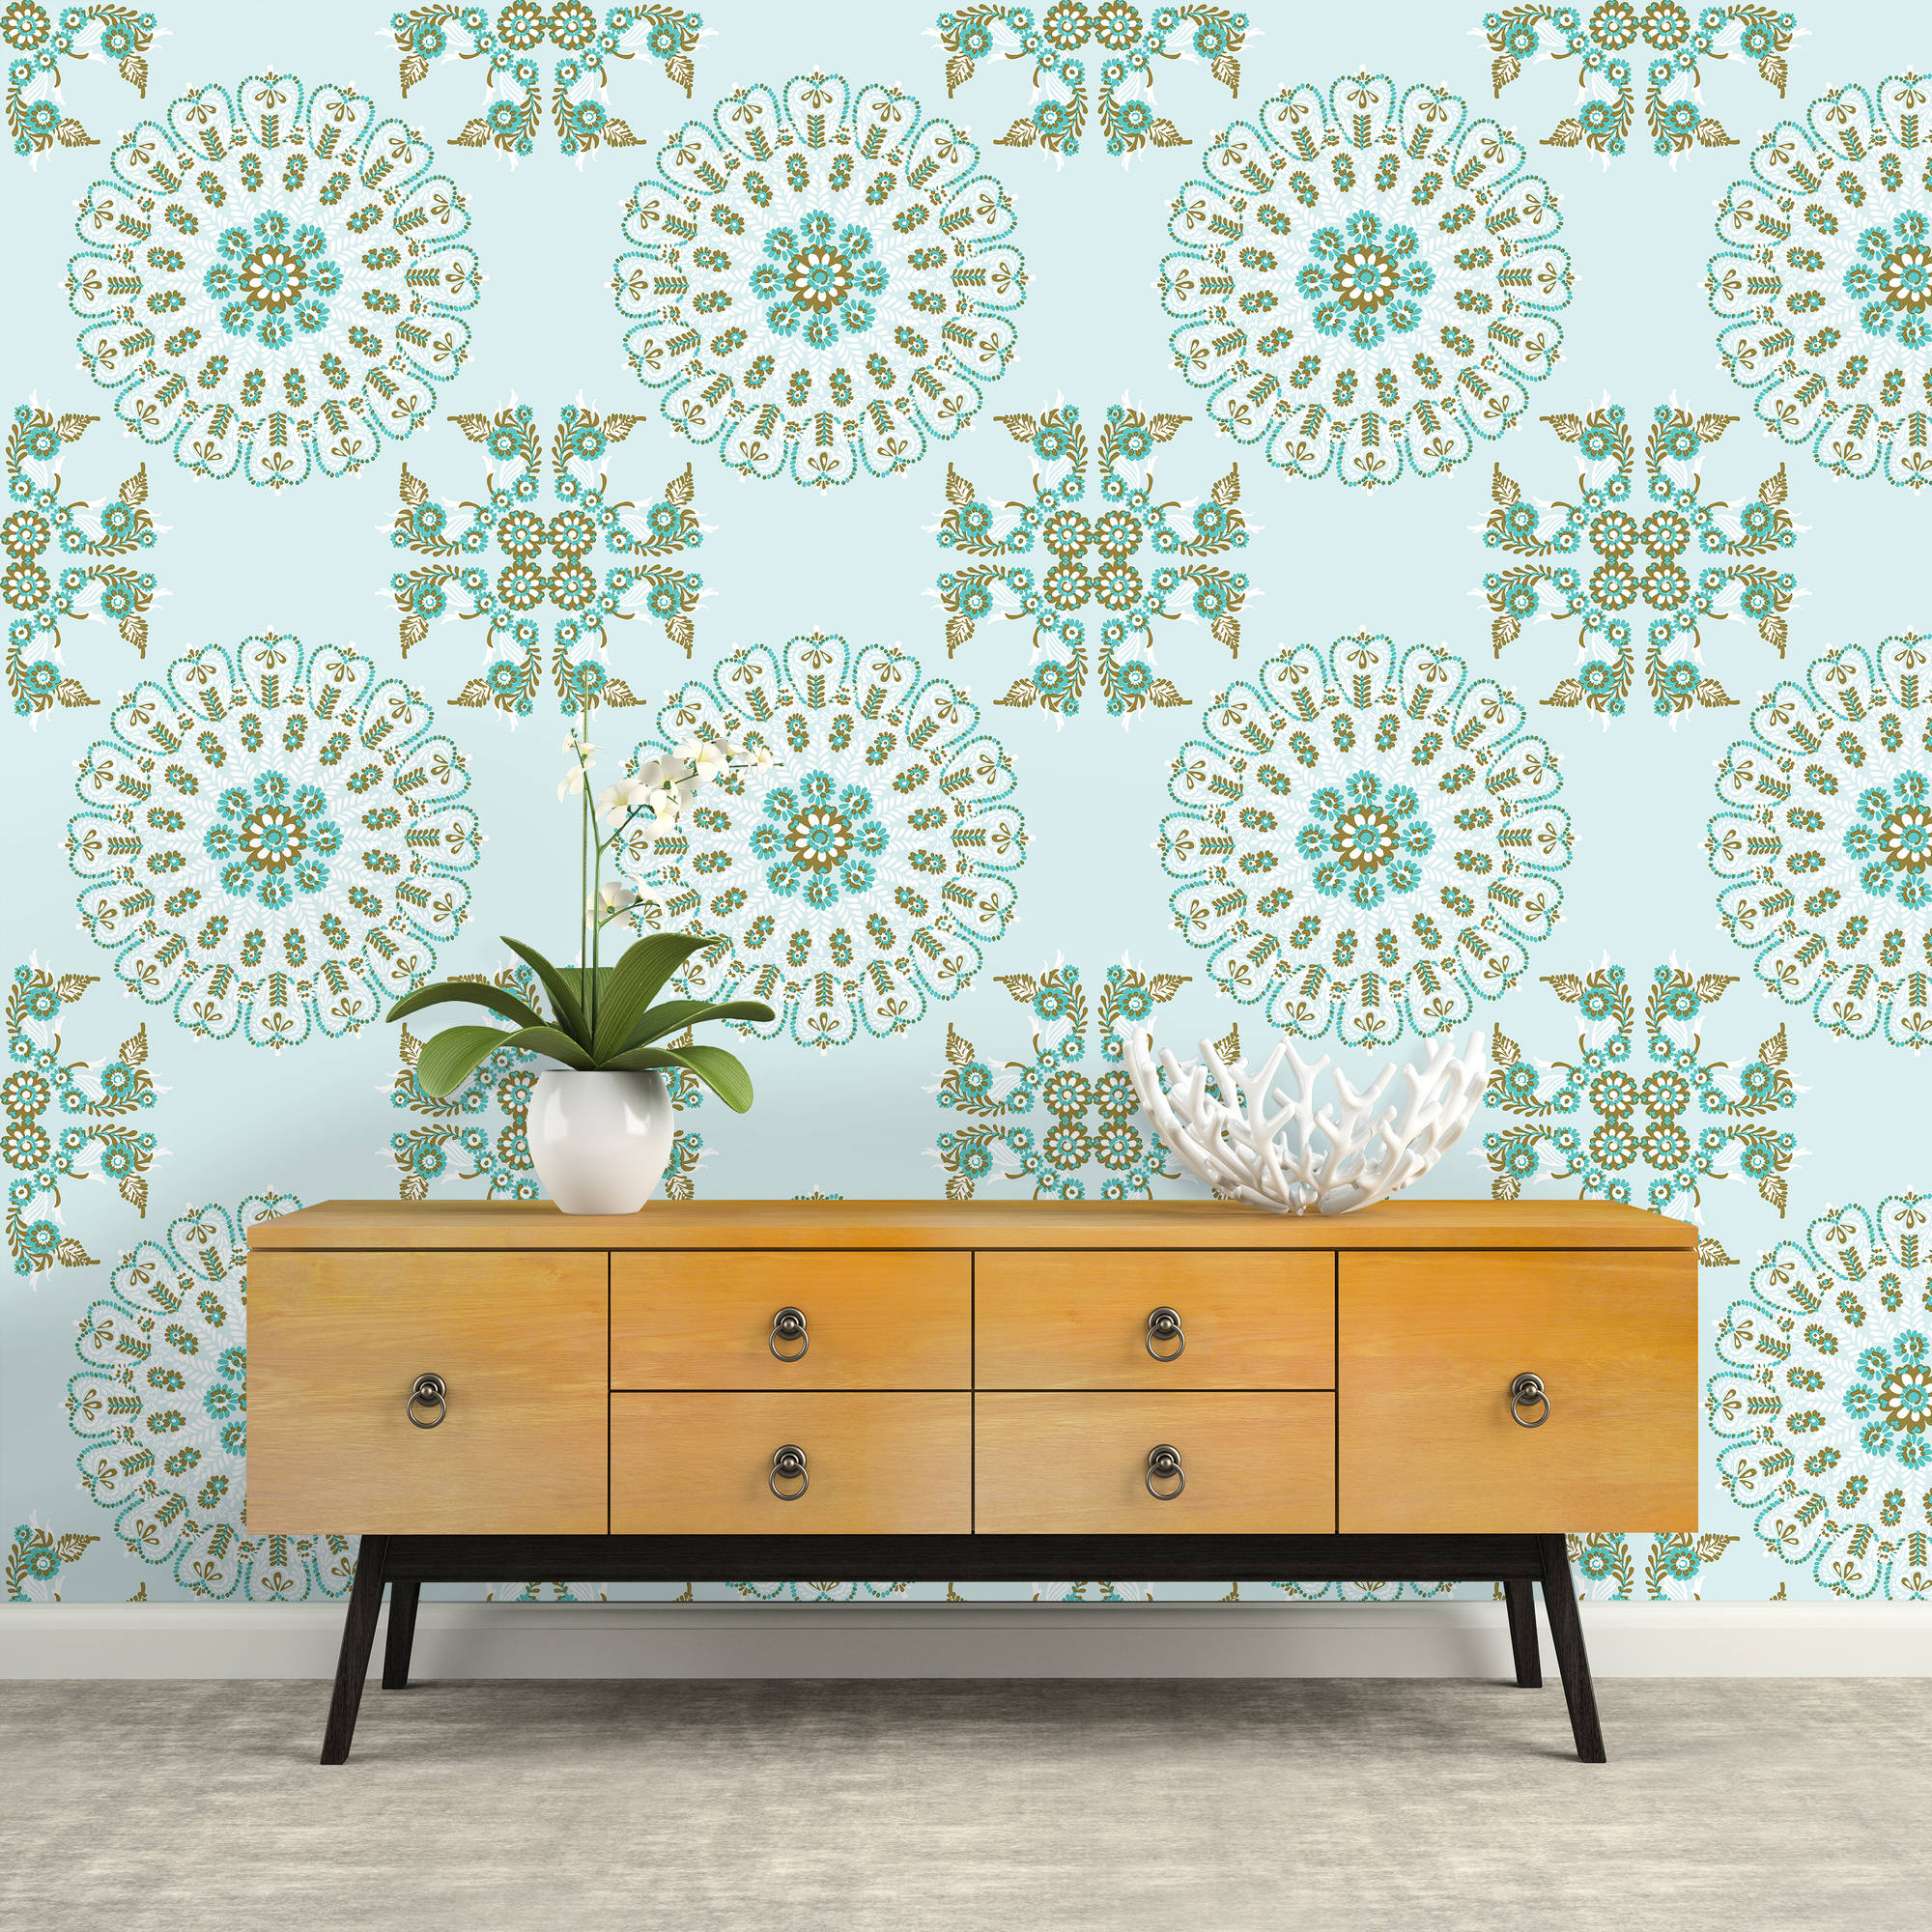 Repeel Removable Wallpaper, Medallion, Turquoise & Gold